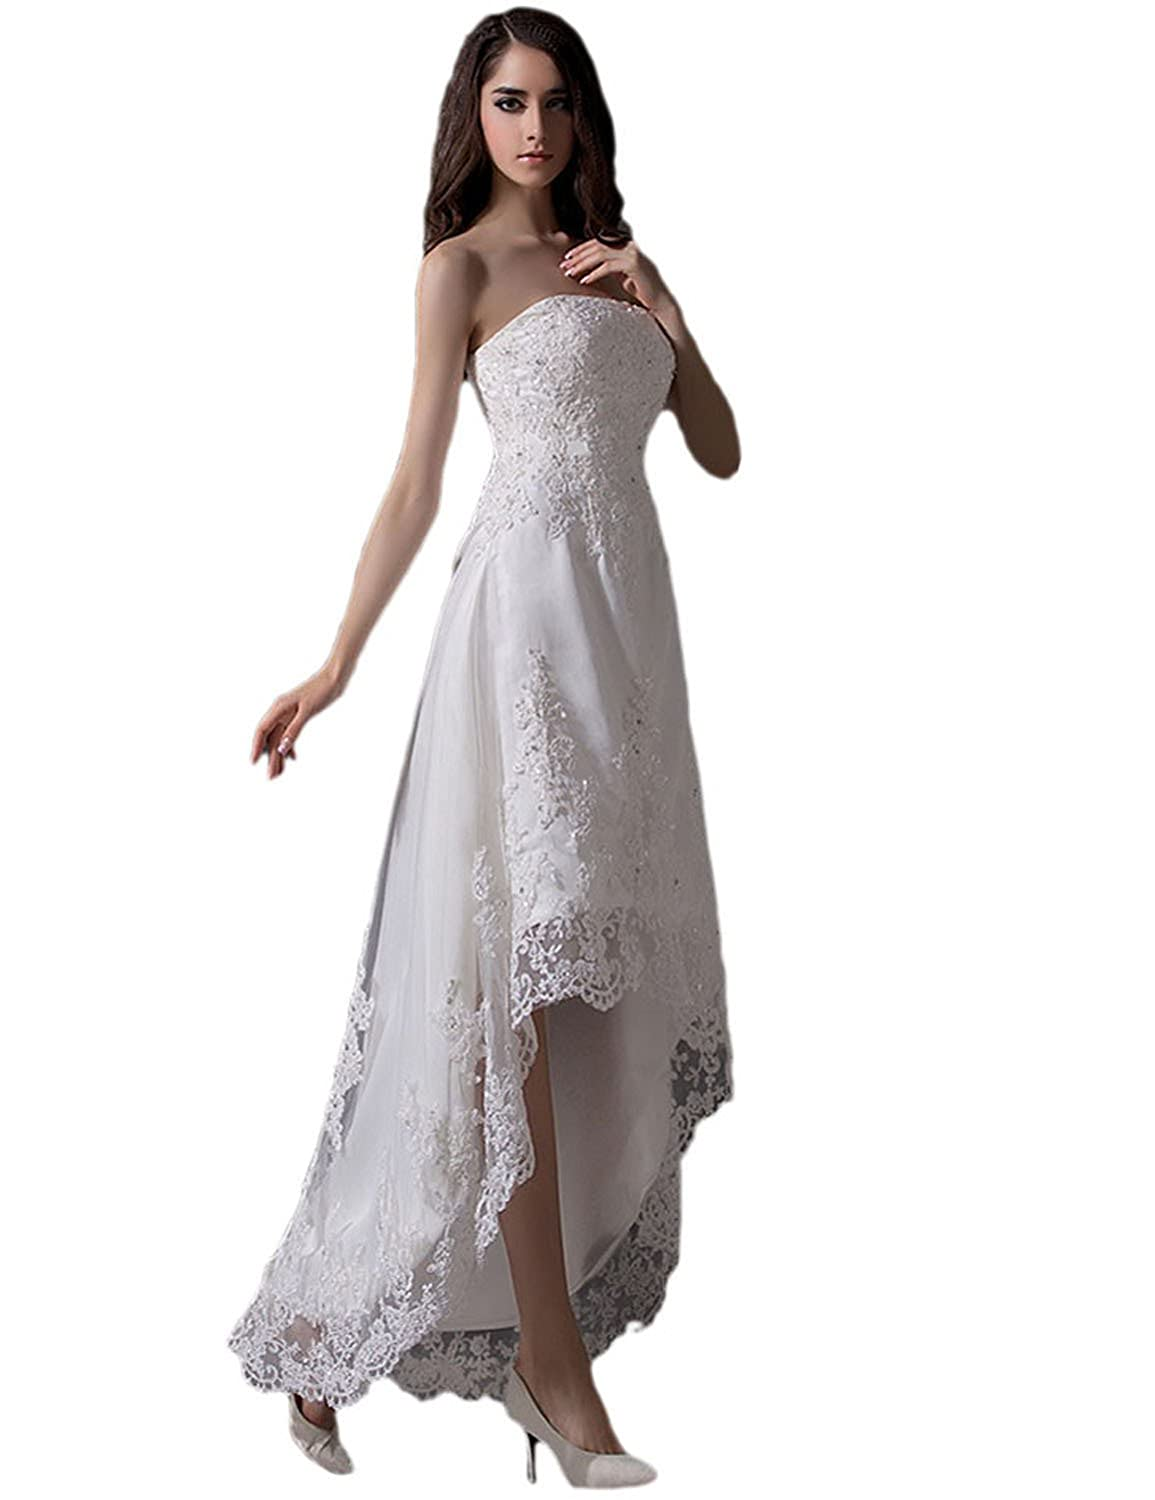 Ivory Vimans Women's 2019 High Low Strapless Beaded Lace Evening Party Dresses